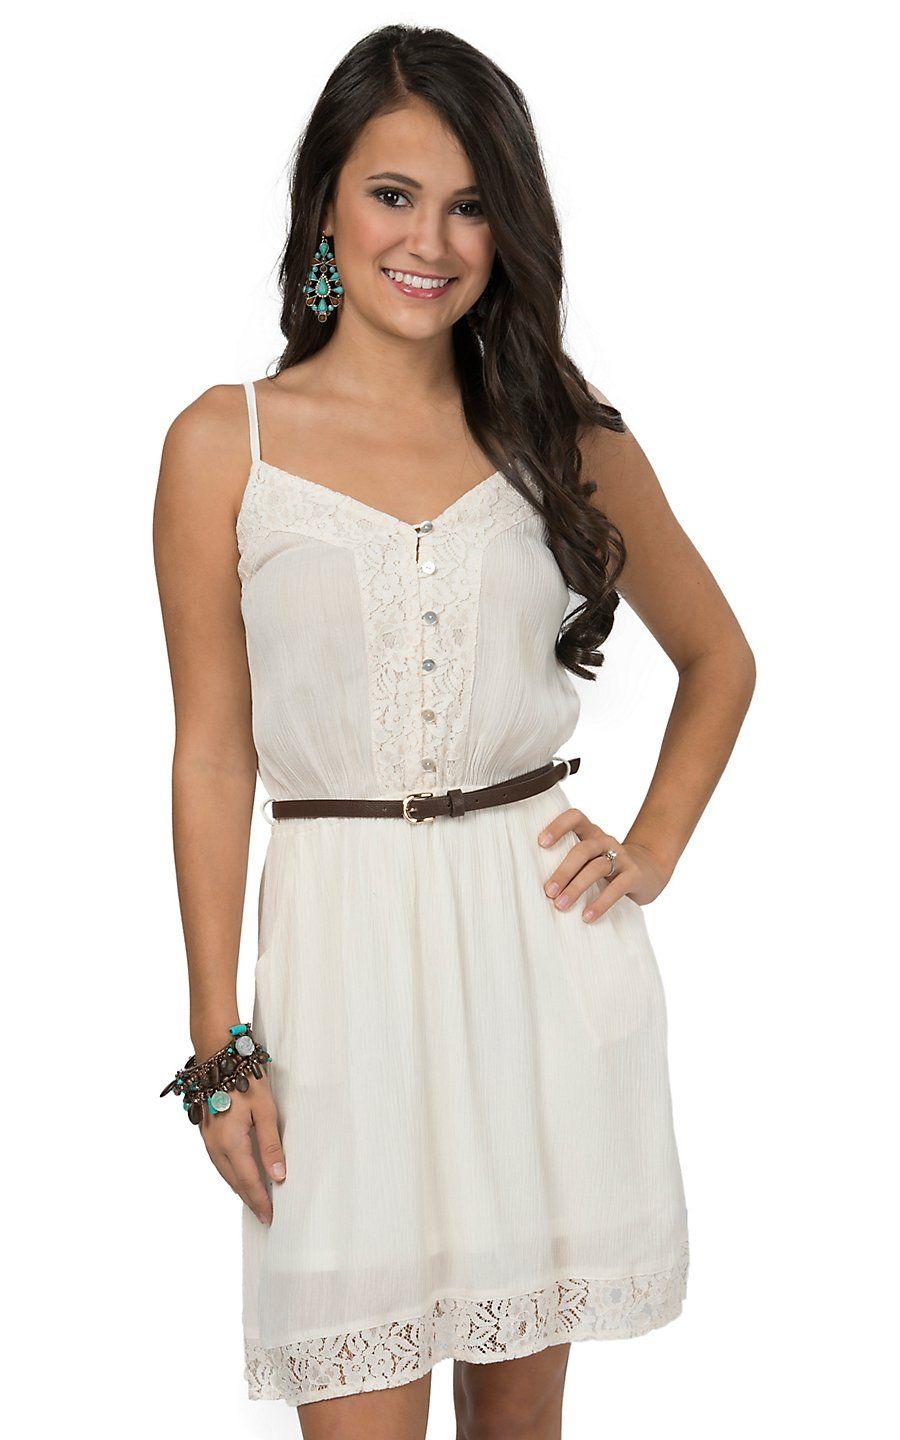 Double Zero Women S Off White With Lace Belted Pocket Sleeveless Dress Western Dresses For Women Dresses Cowgirl Dresses [ 1440 x 900 Pixel ]